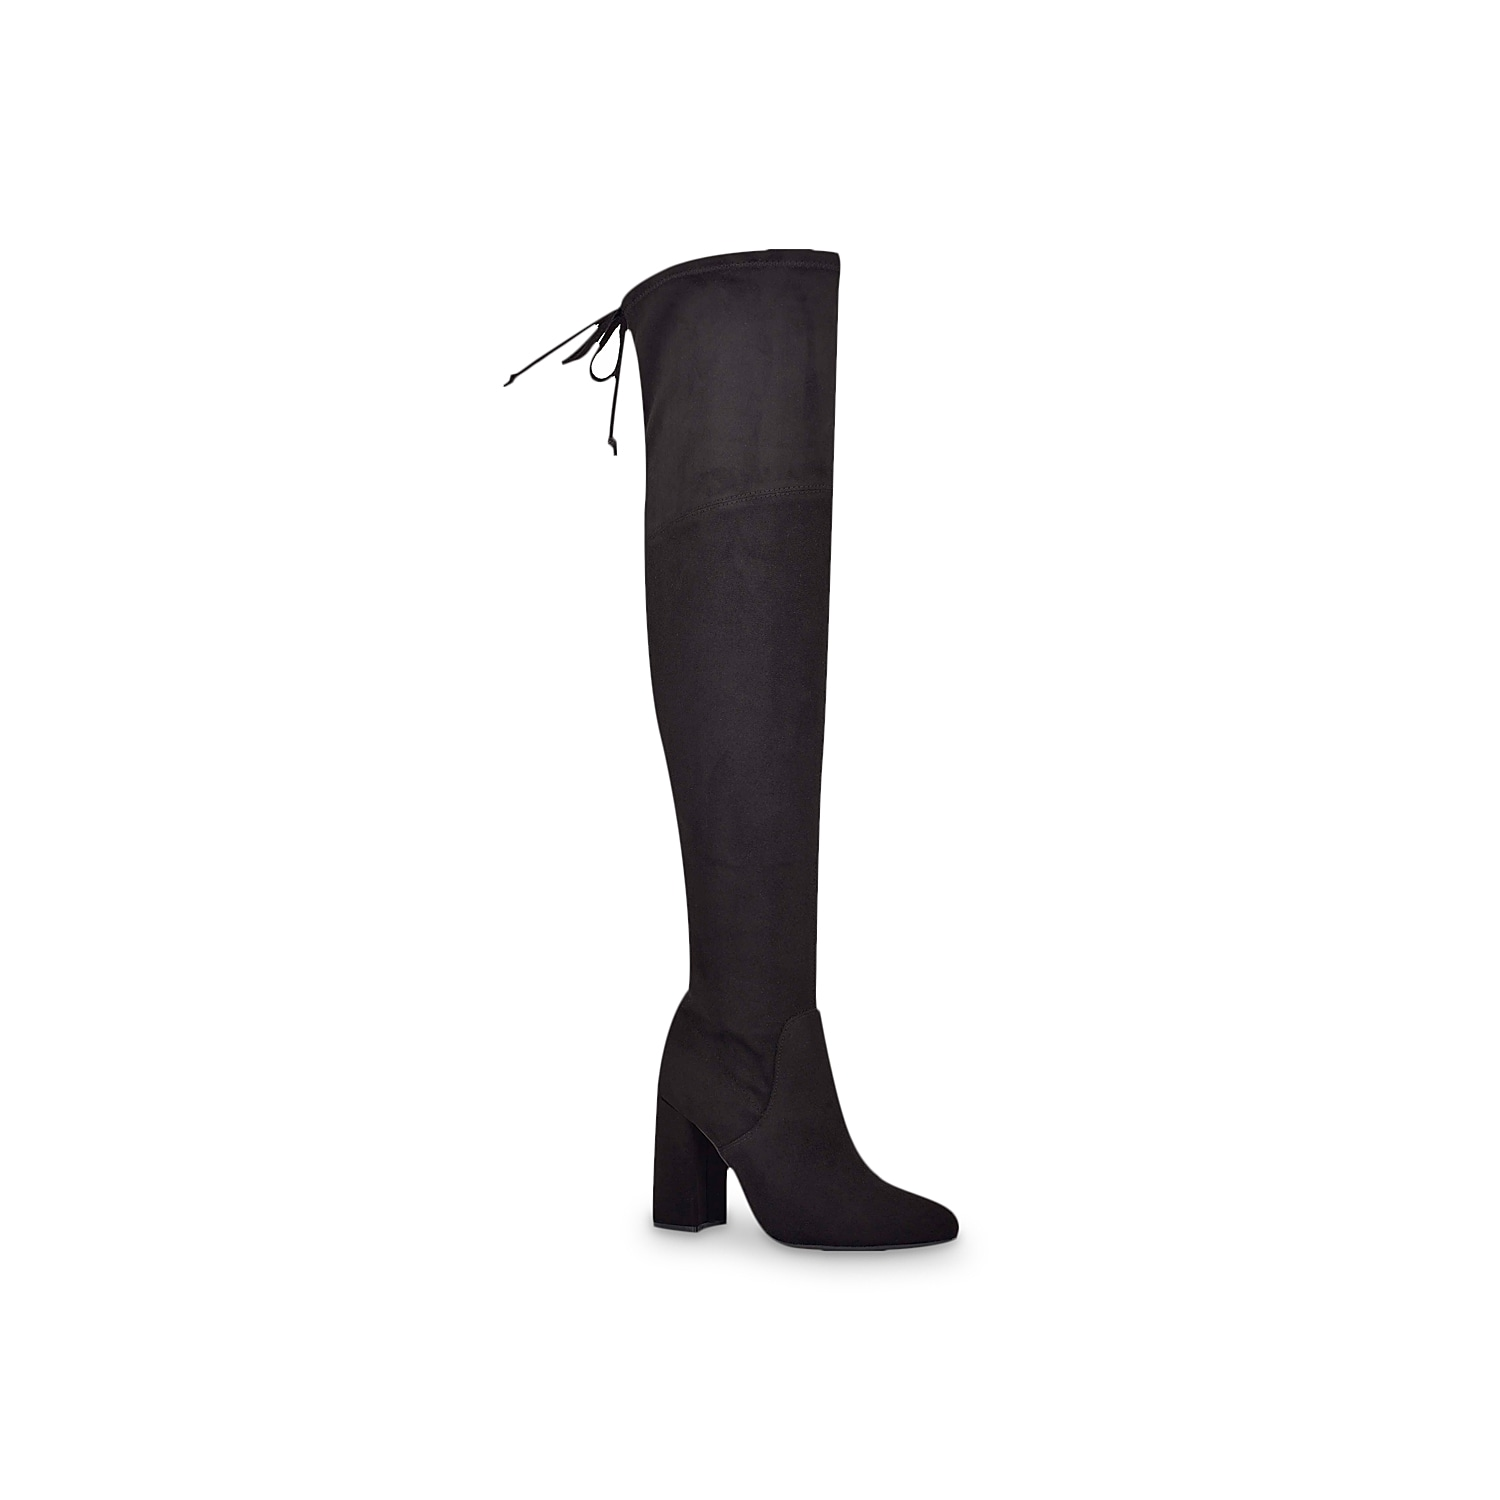 Kickstart classy looks with the Jaydi over the knee boot from Unisa. This tall boot features a versatile design with a bold block heel to upgrade all your cool weather outfits.Click here for Boot Measuring Guide.